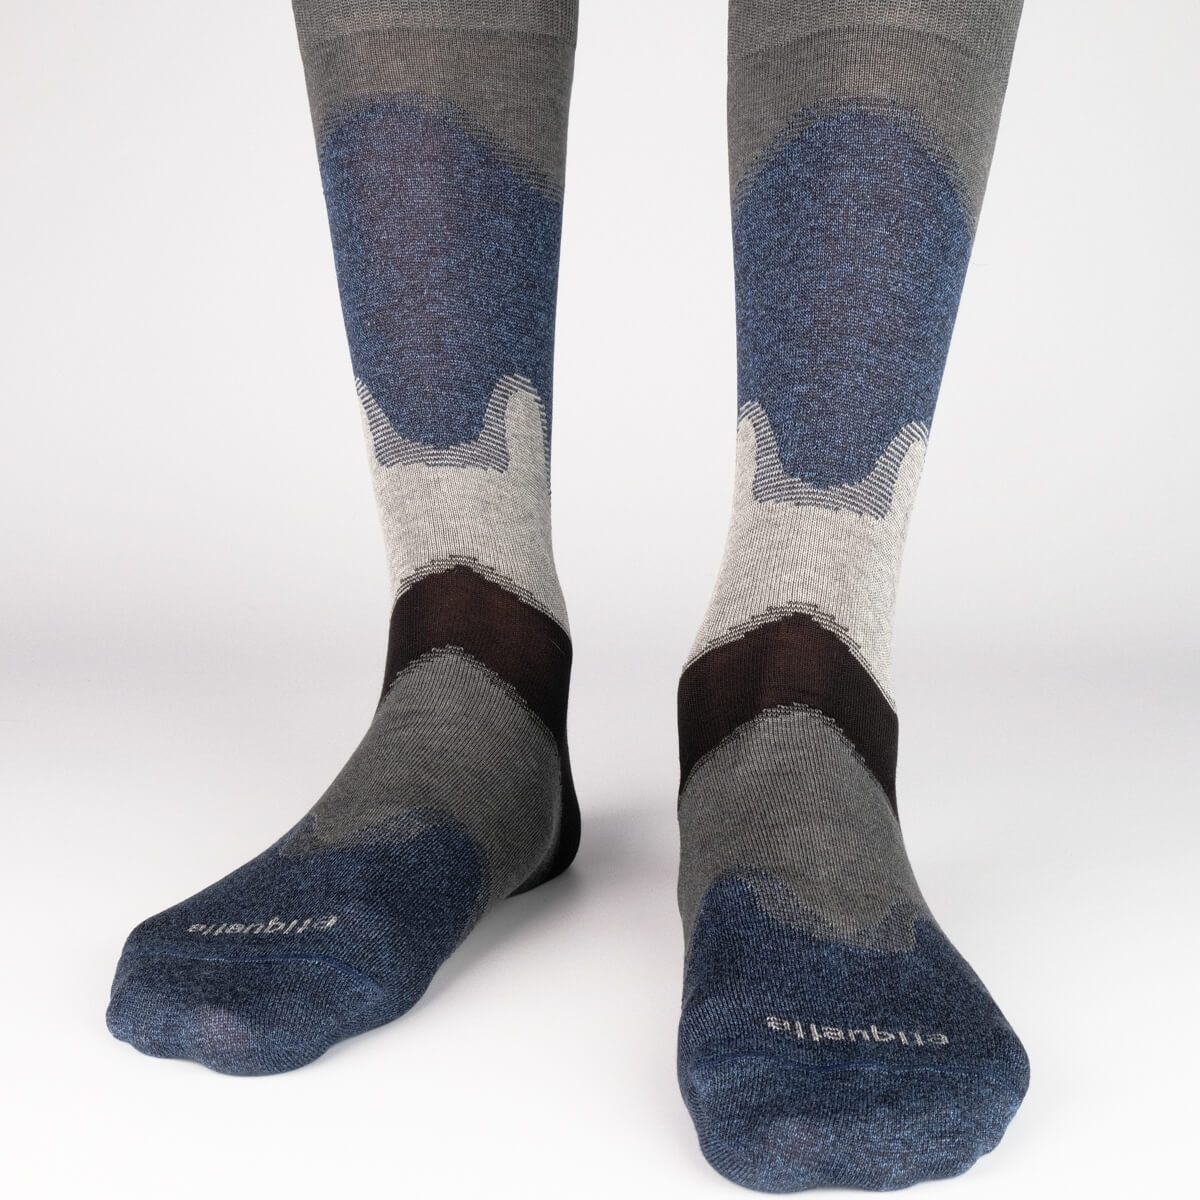 Idyllic - Dark Grey - Mens Socks | Etiquette Clothiers Global Official